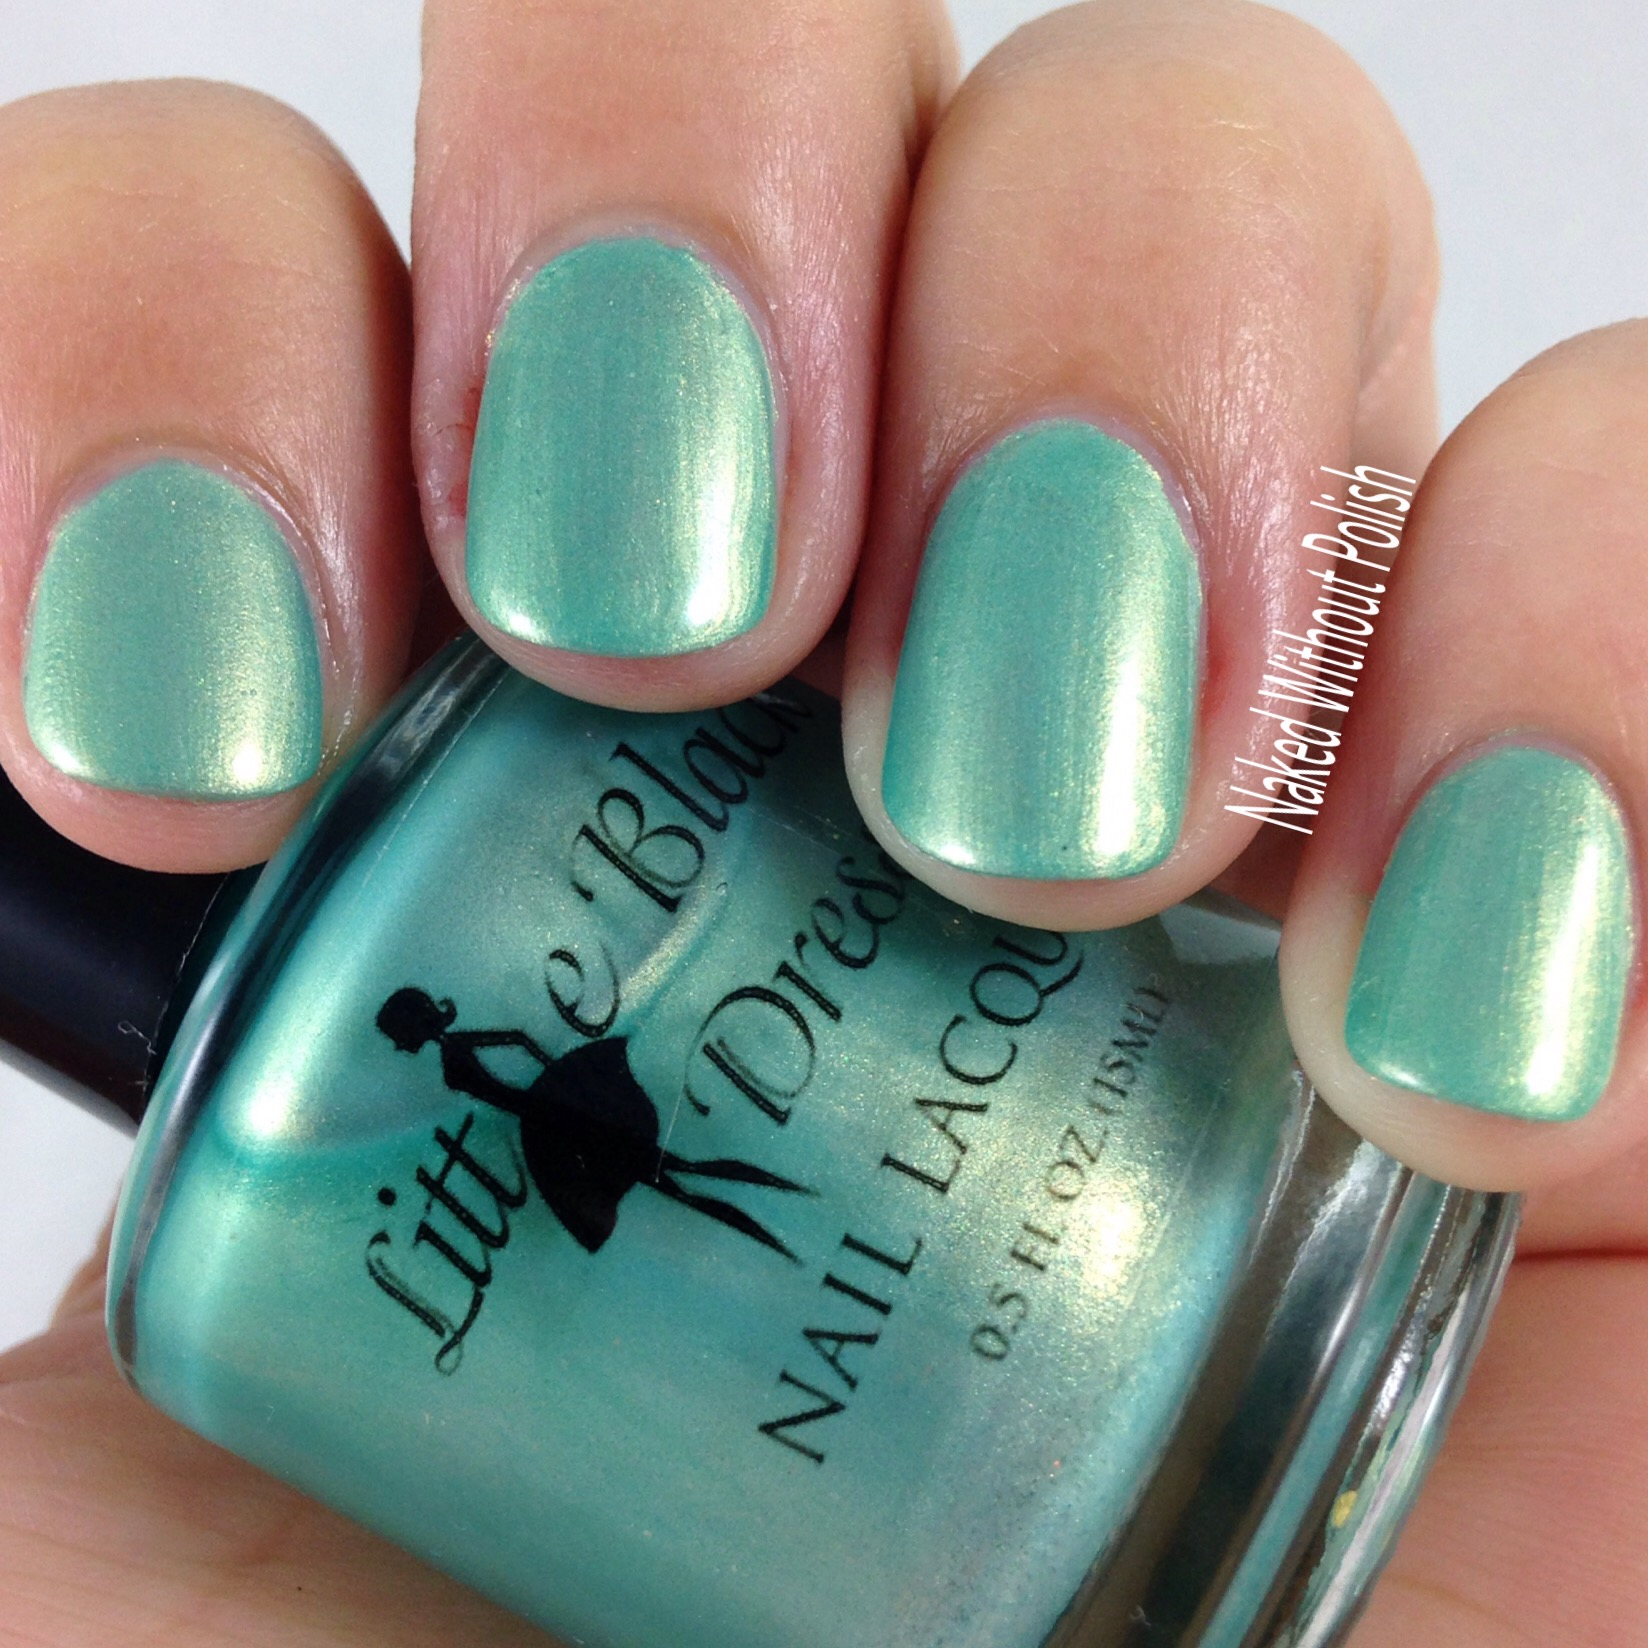 Little-Black-Dress-Nail-Lacquer-Seafoam-Sirens-6